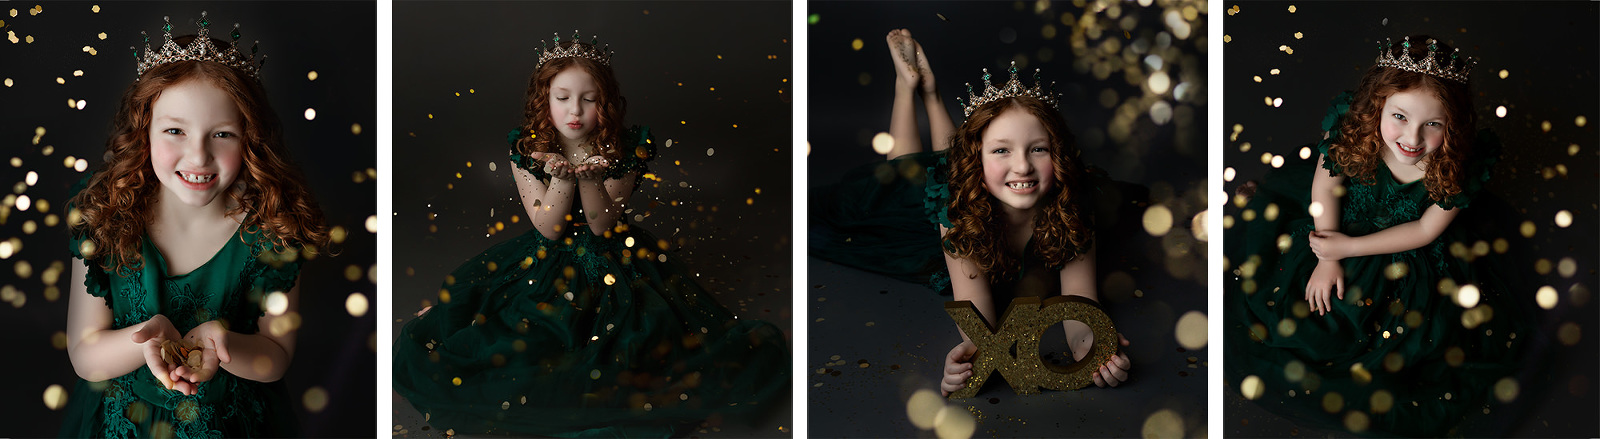 cute girl throwing glitter during a photoshoot